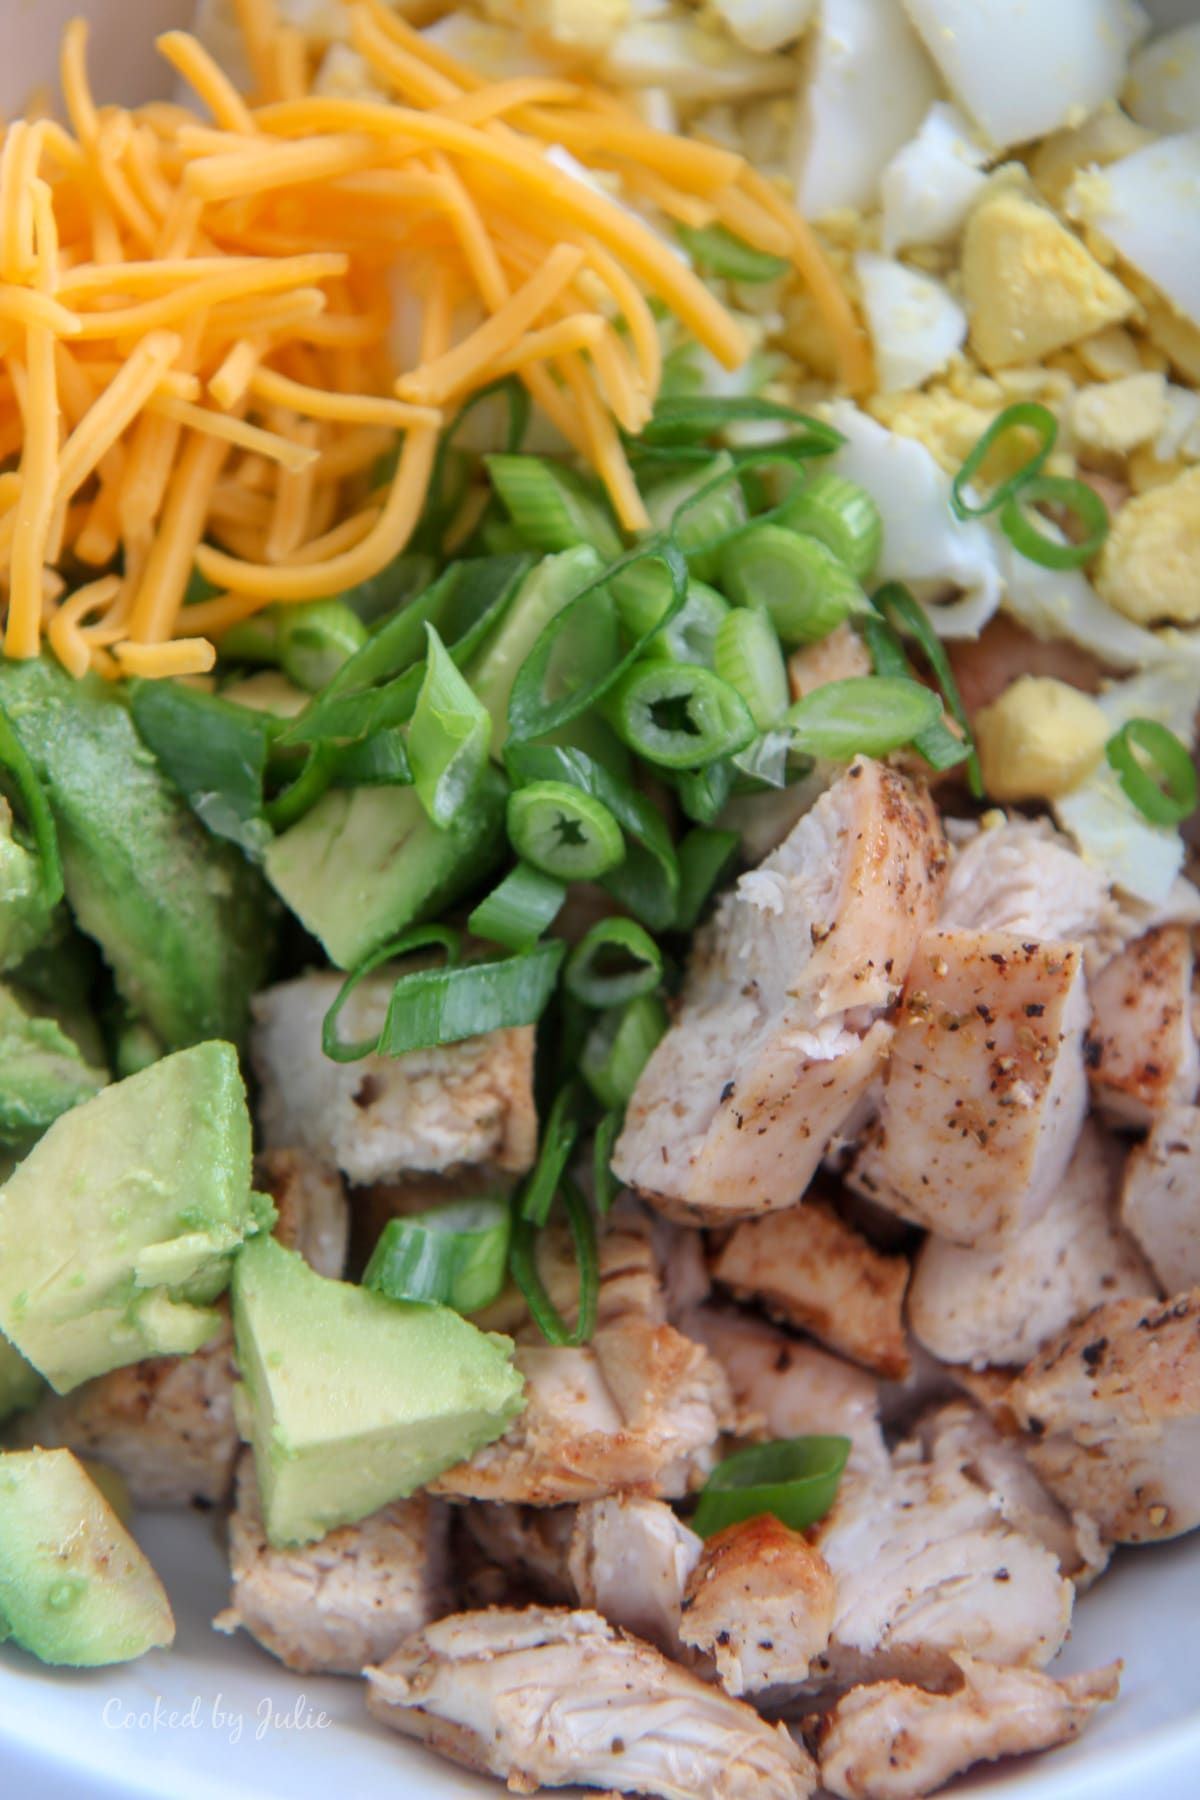 Avocado Chicken Salad (Low Carb) #ketofriendlysalads This avocado chicken salad is the perfect summer salad for picnics and potlucks! This is a Low Carb and Keto Friendly Salad but filled with flavor. #avocadosalad #ketosalad #ketofriendlysalads